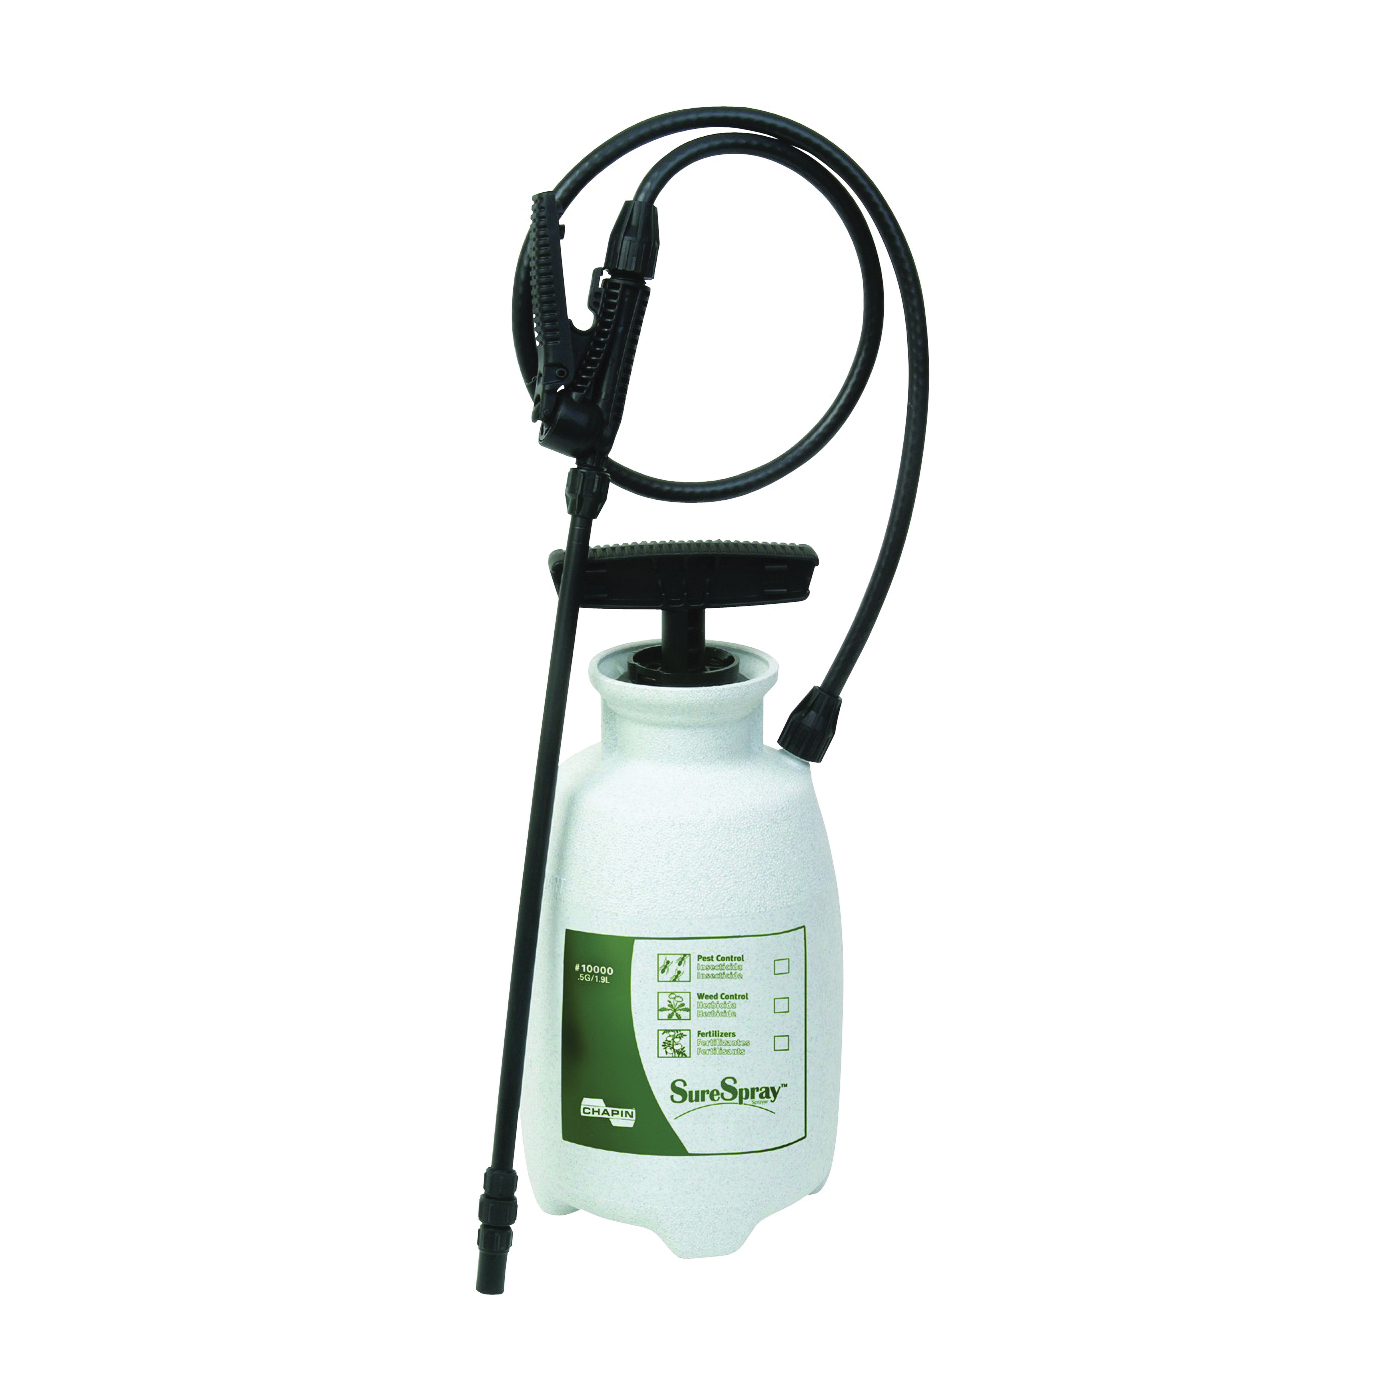 Picture of CHAPIN Lawn & Garden Series 10000 Compression Sprayer, 0.5 gal Tank, Poly Tank, 34 in L Hose, White